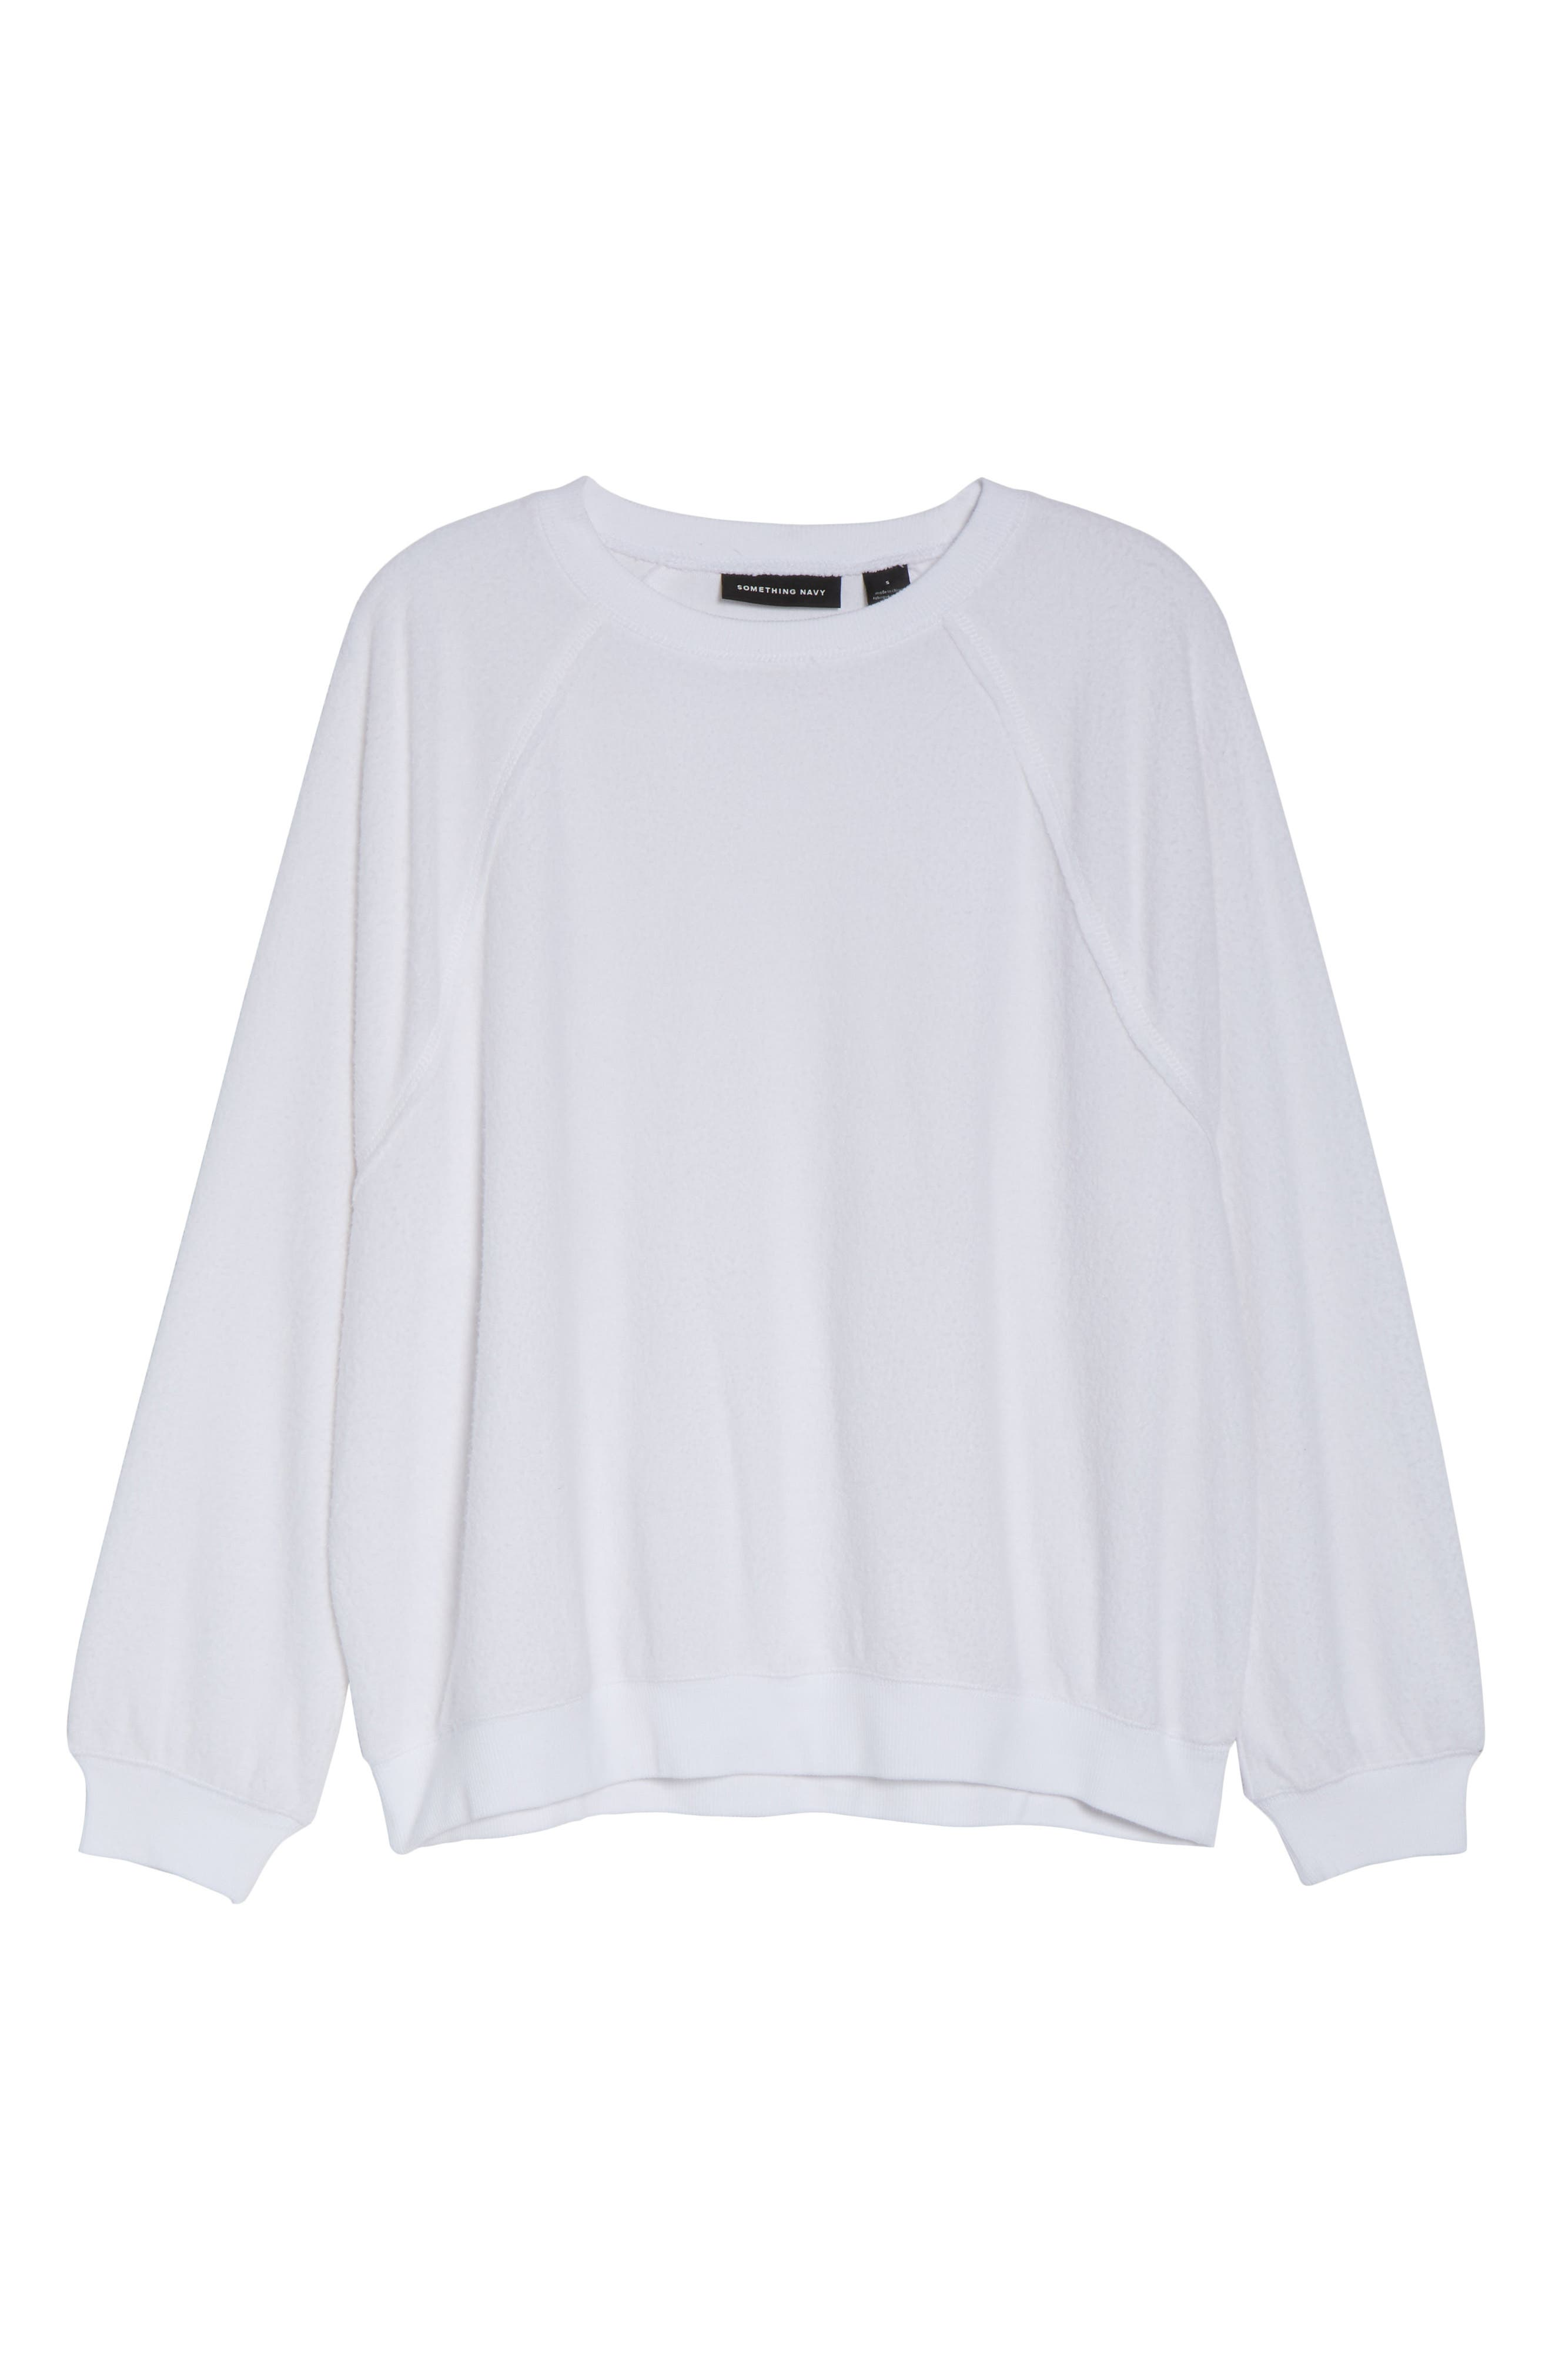 SOMETHING NAVY, Batwing Fleece Pullover, Alternate thumbnail 7, color, WHITE